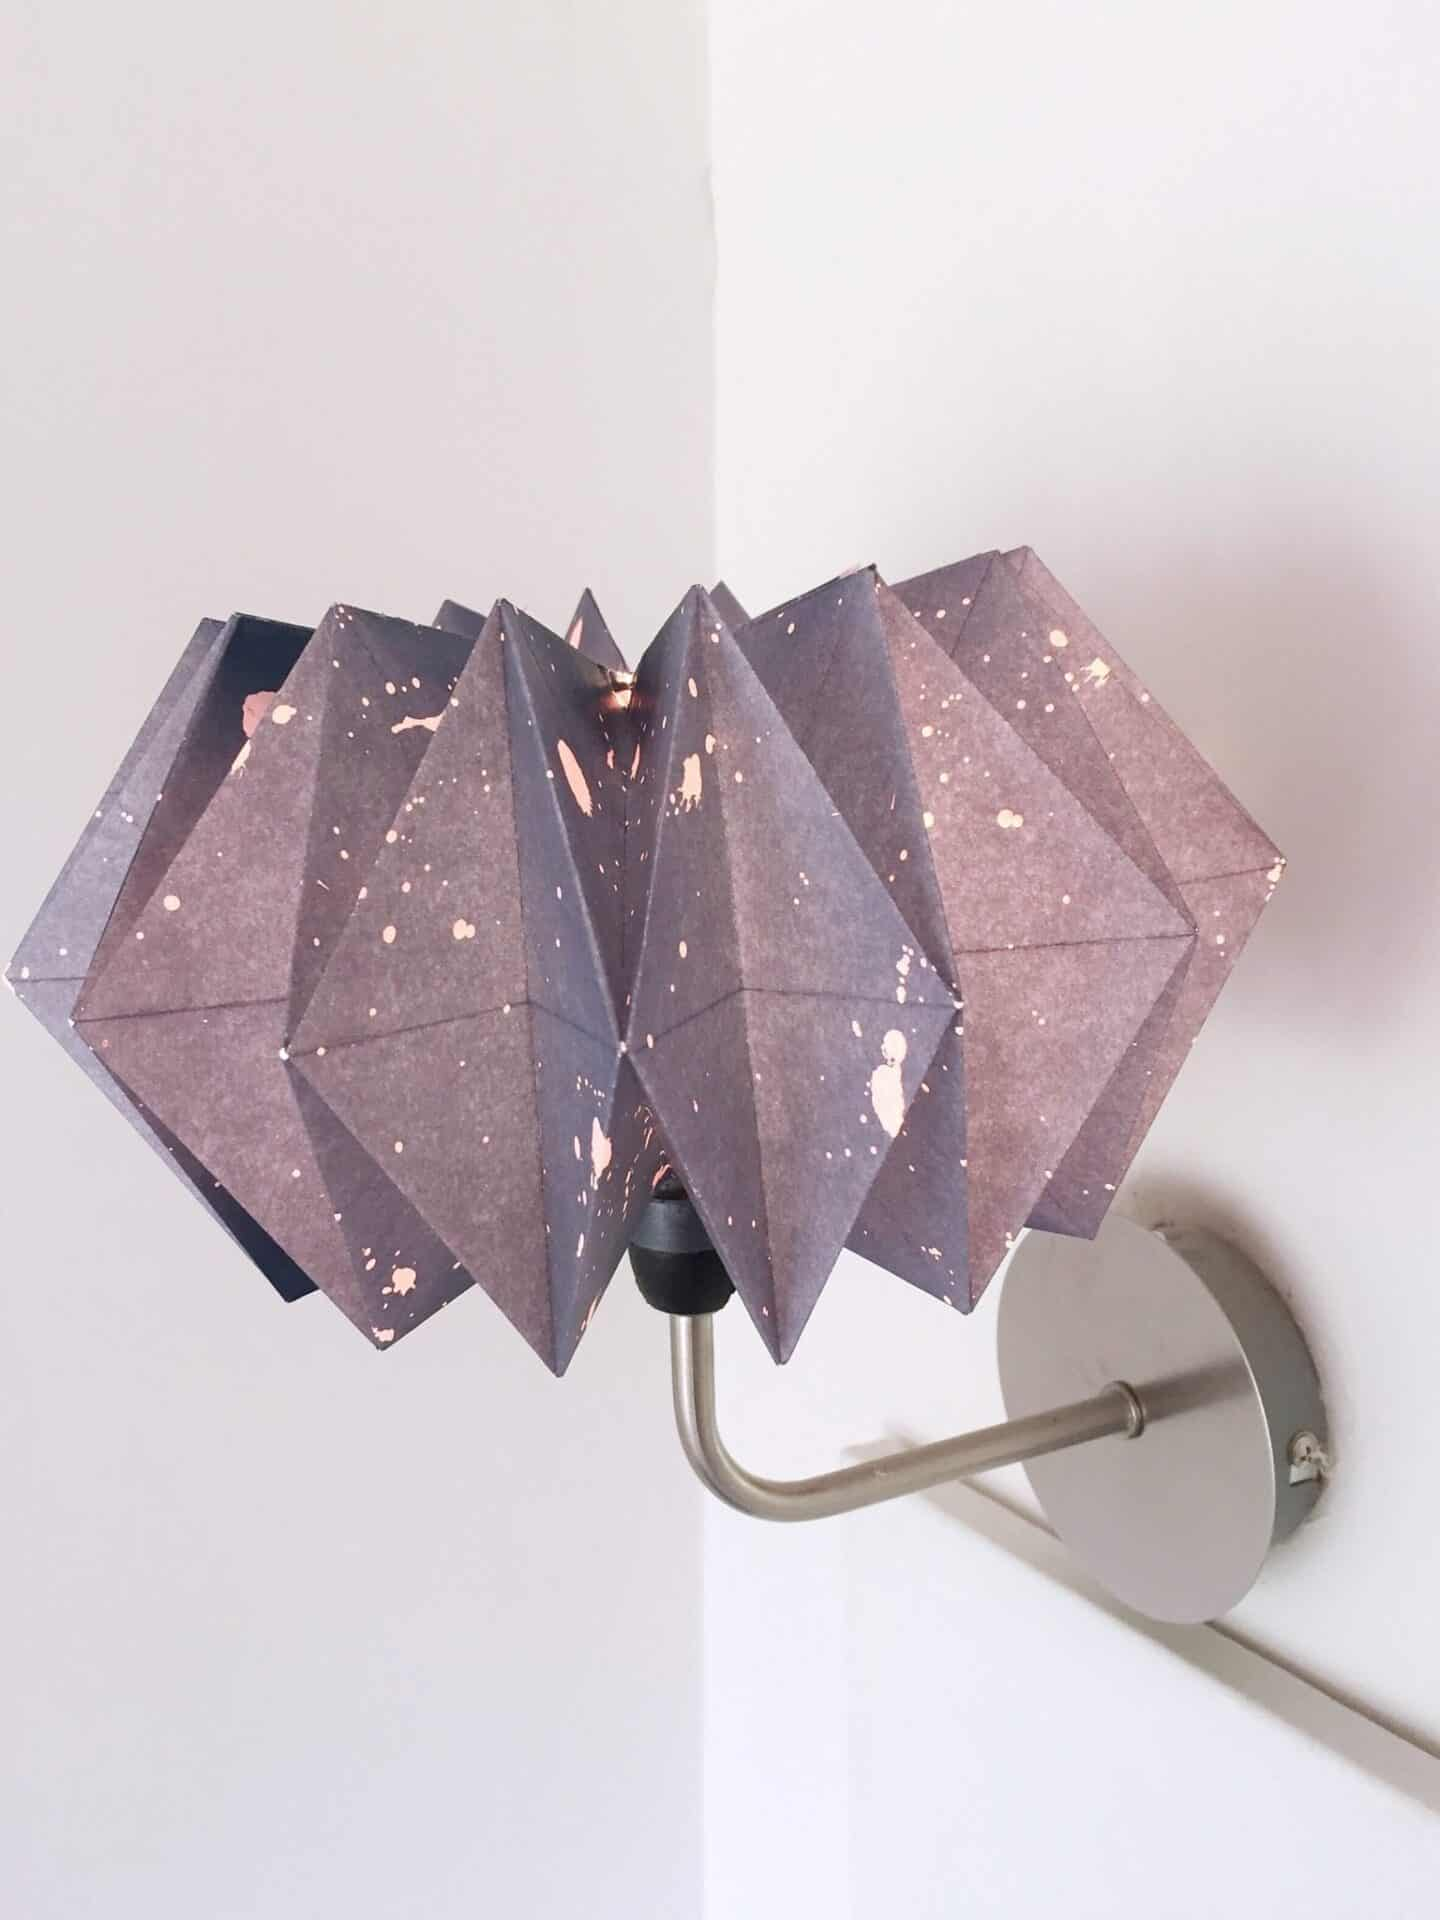 Making Origami Lampshades with Origami-Est